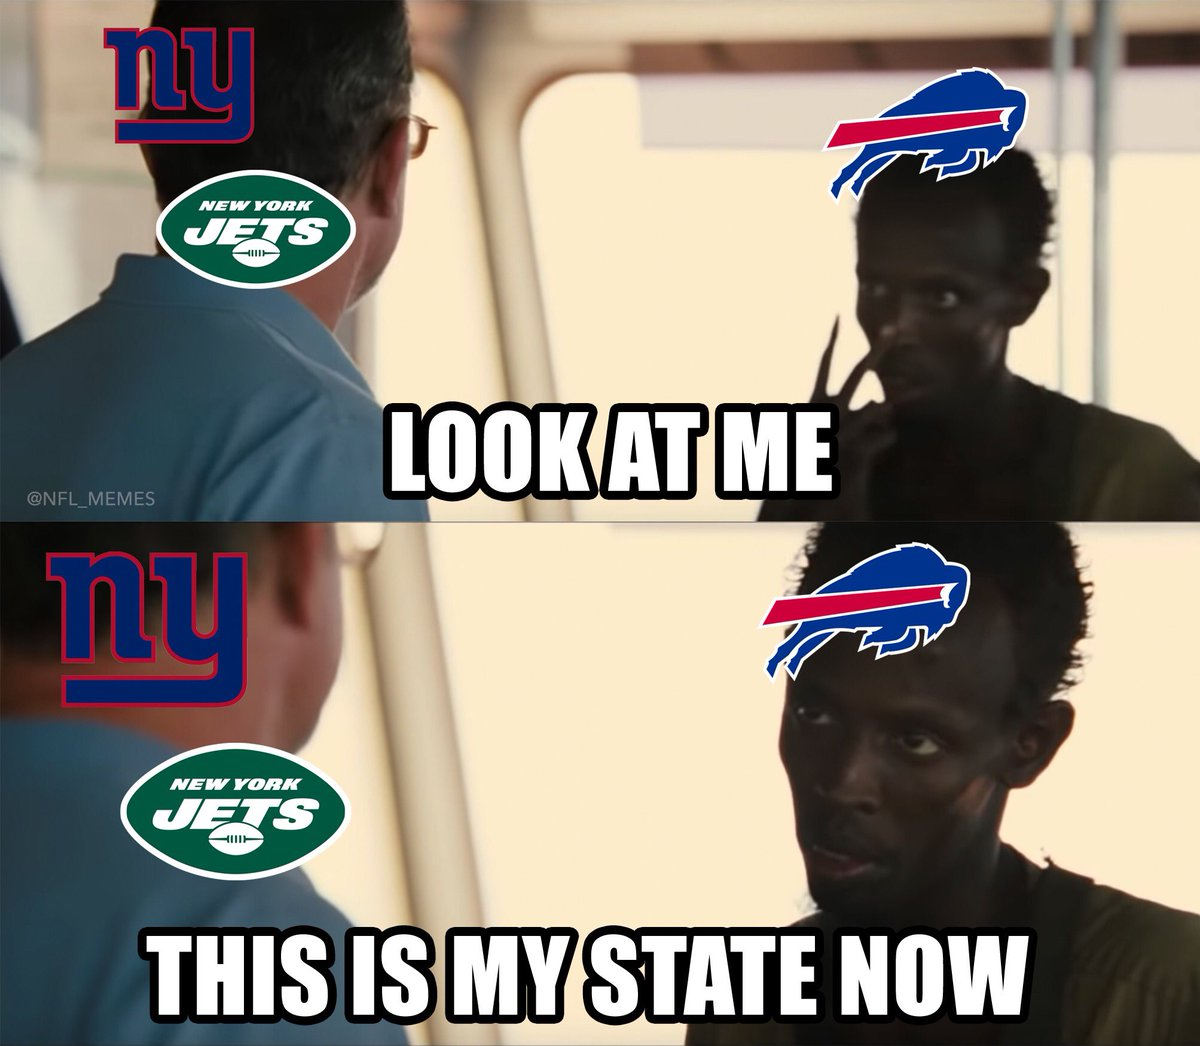 Giants & Jets =  <br>http://pic.twitter.com/fzPHUY6AMn